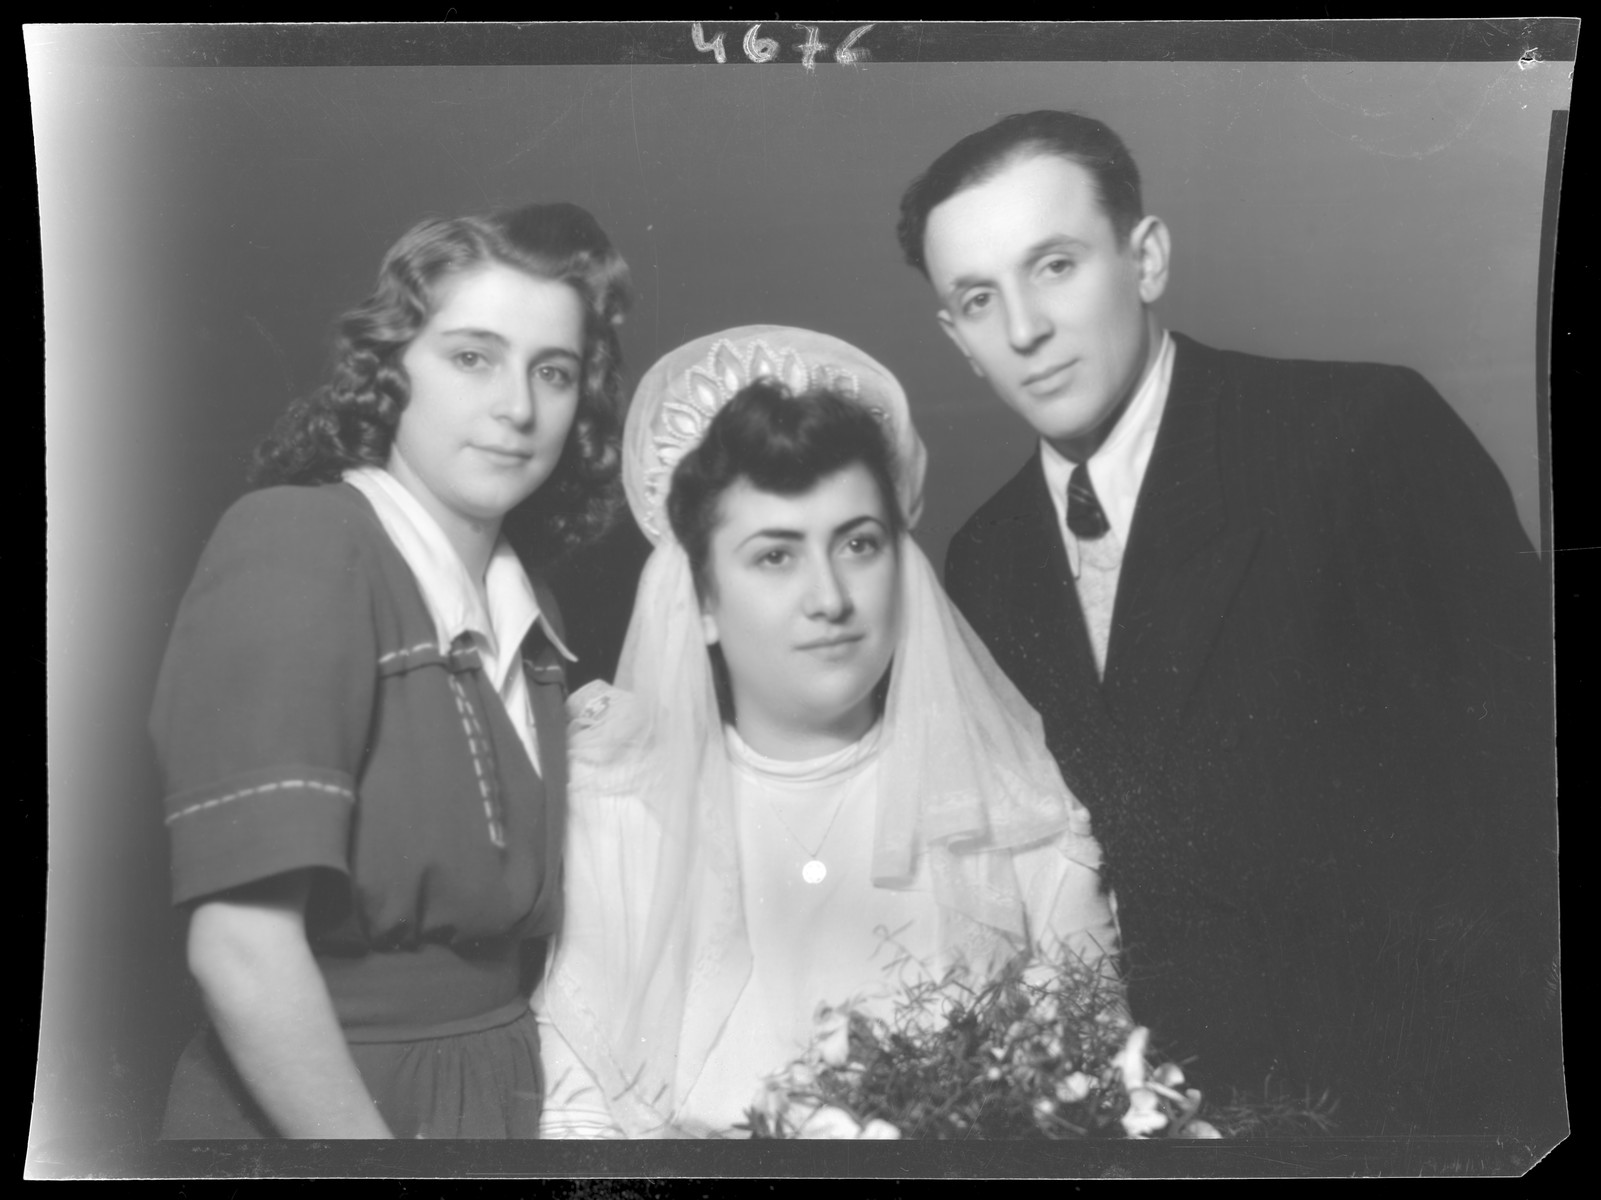 Studio wedding portrait of Miklos Grun, his bride and another woman.